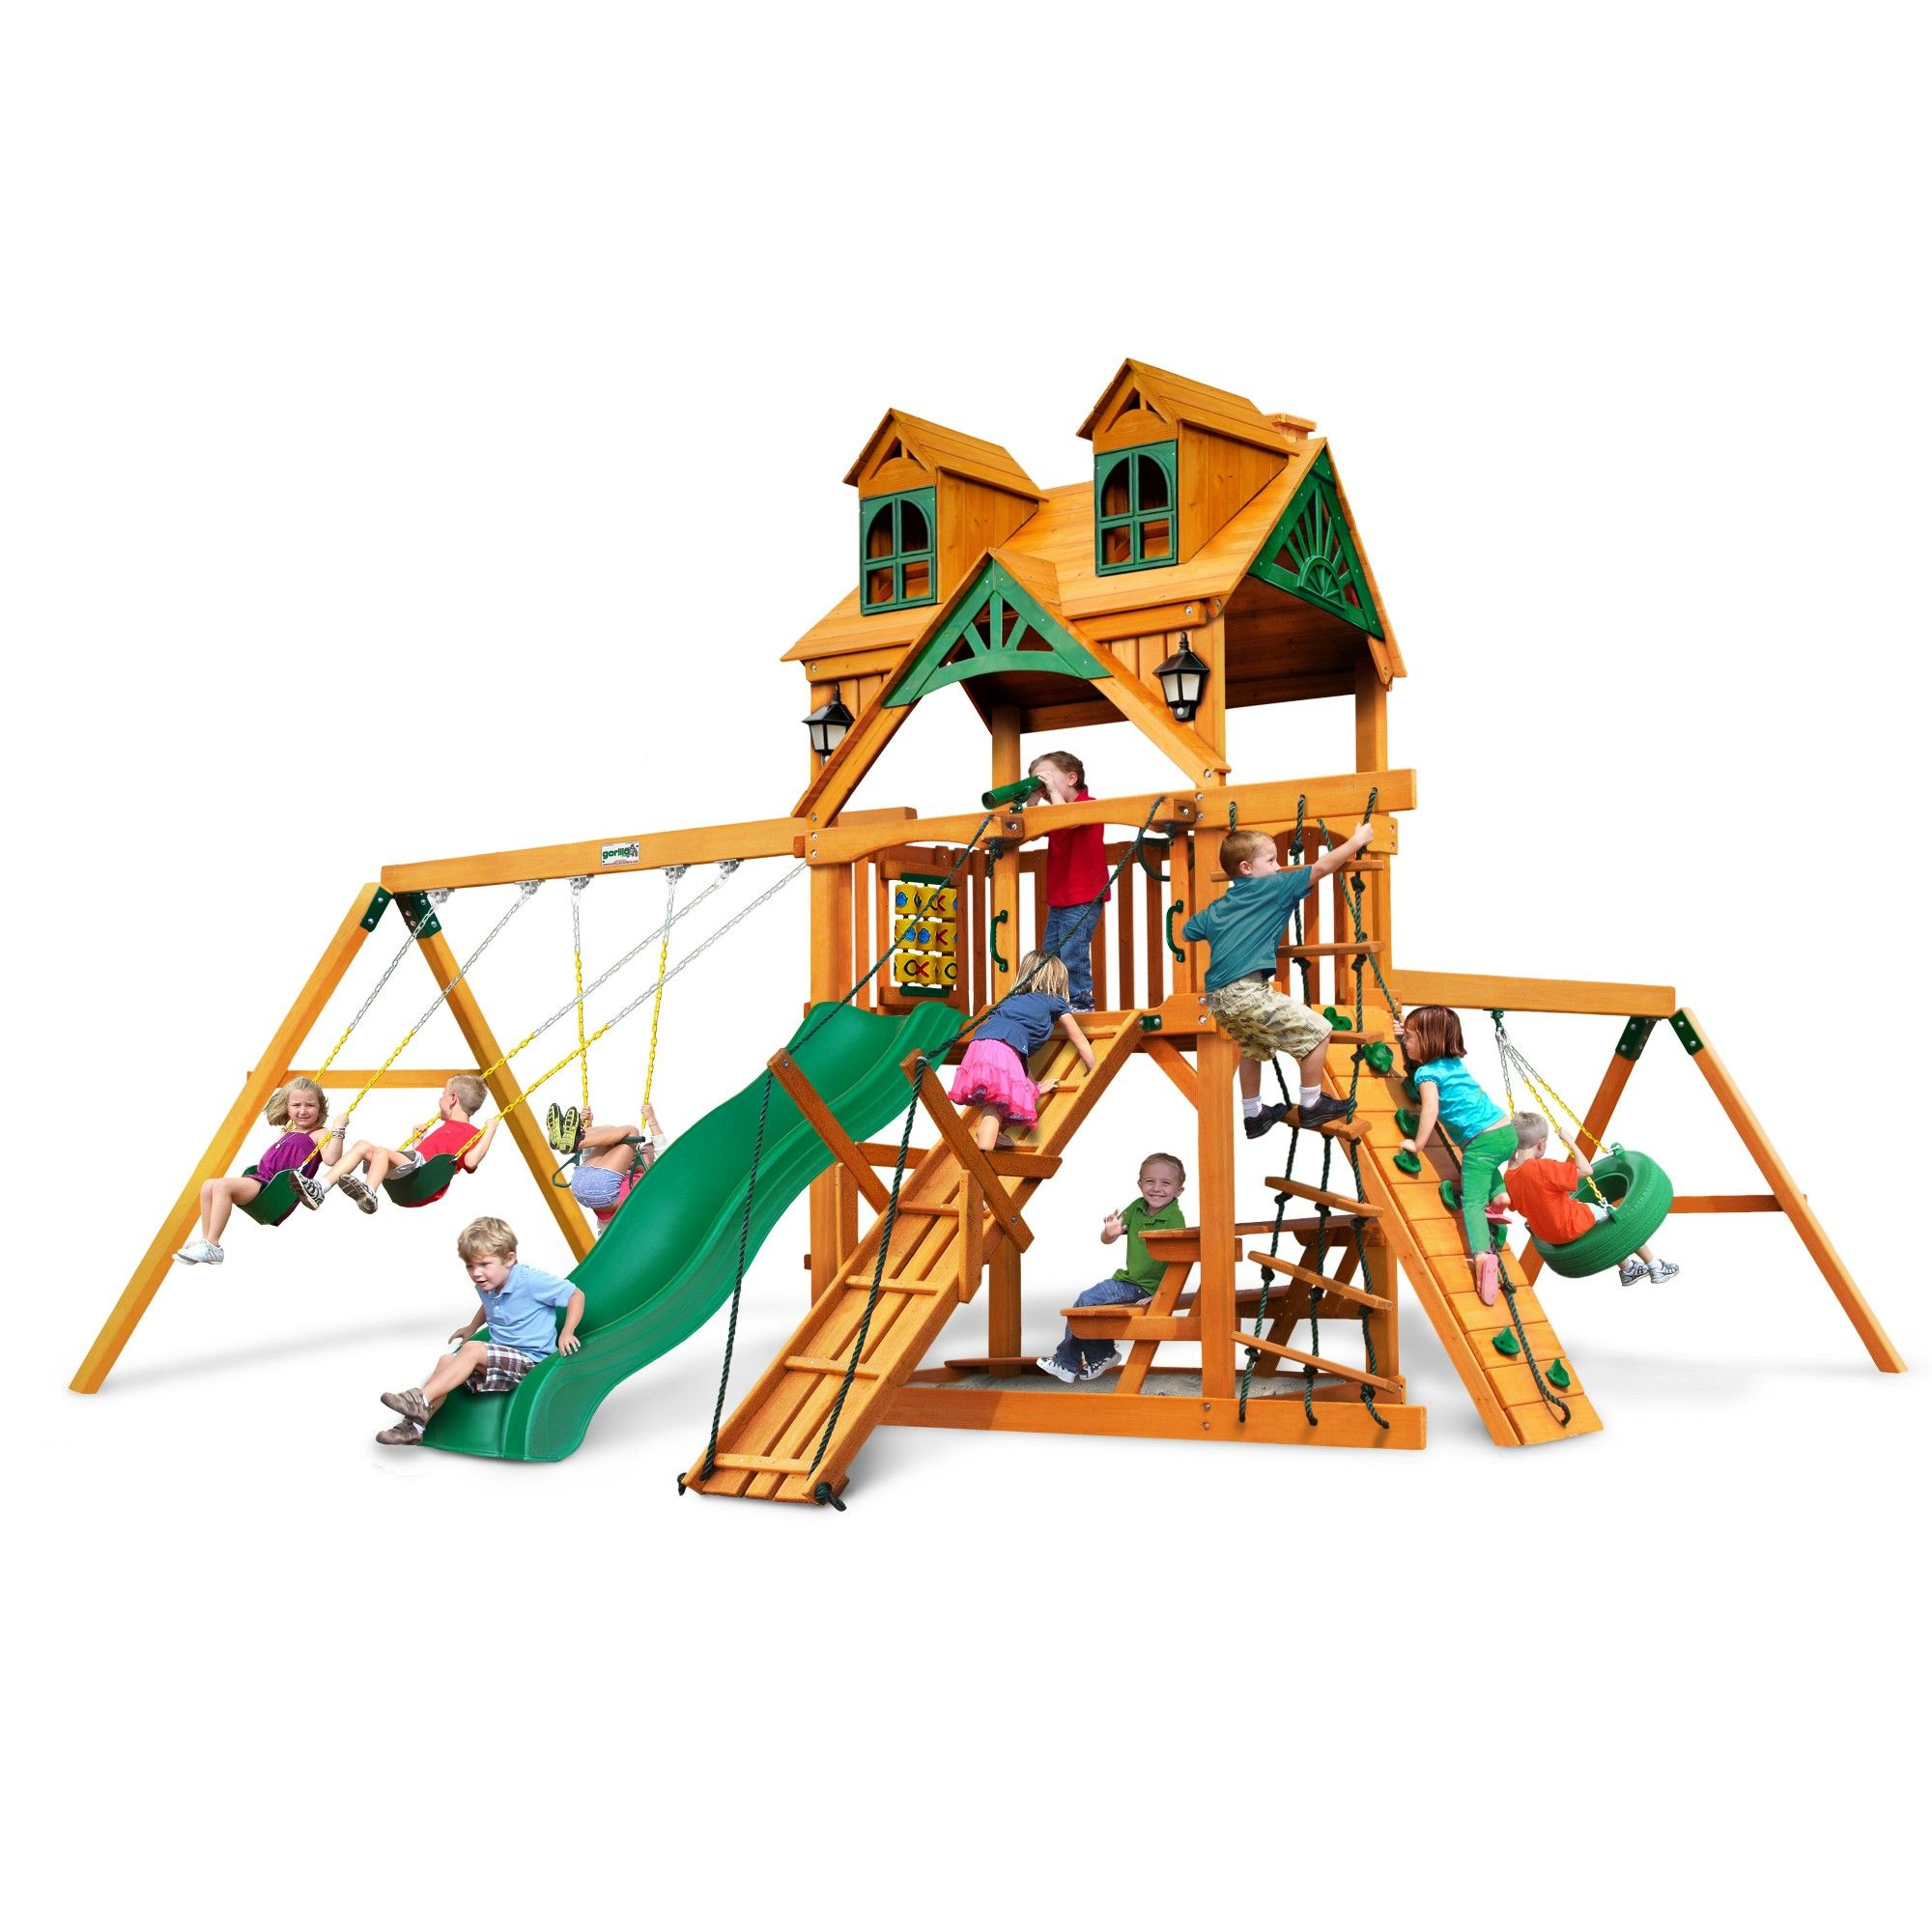 Gorilla Playsets Malibu Frontier Swing Set With Amber Wood Roof